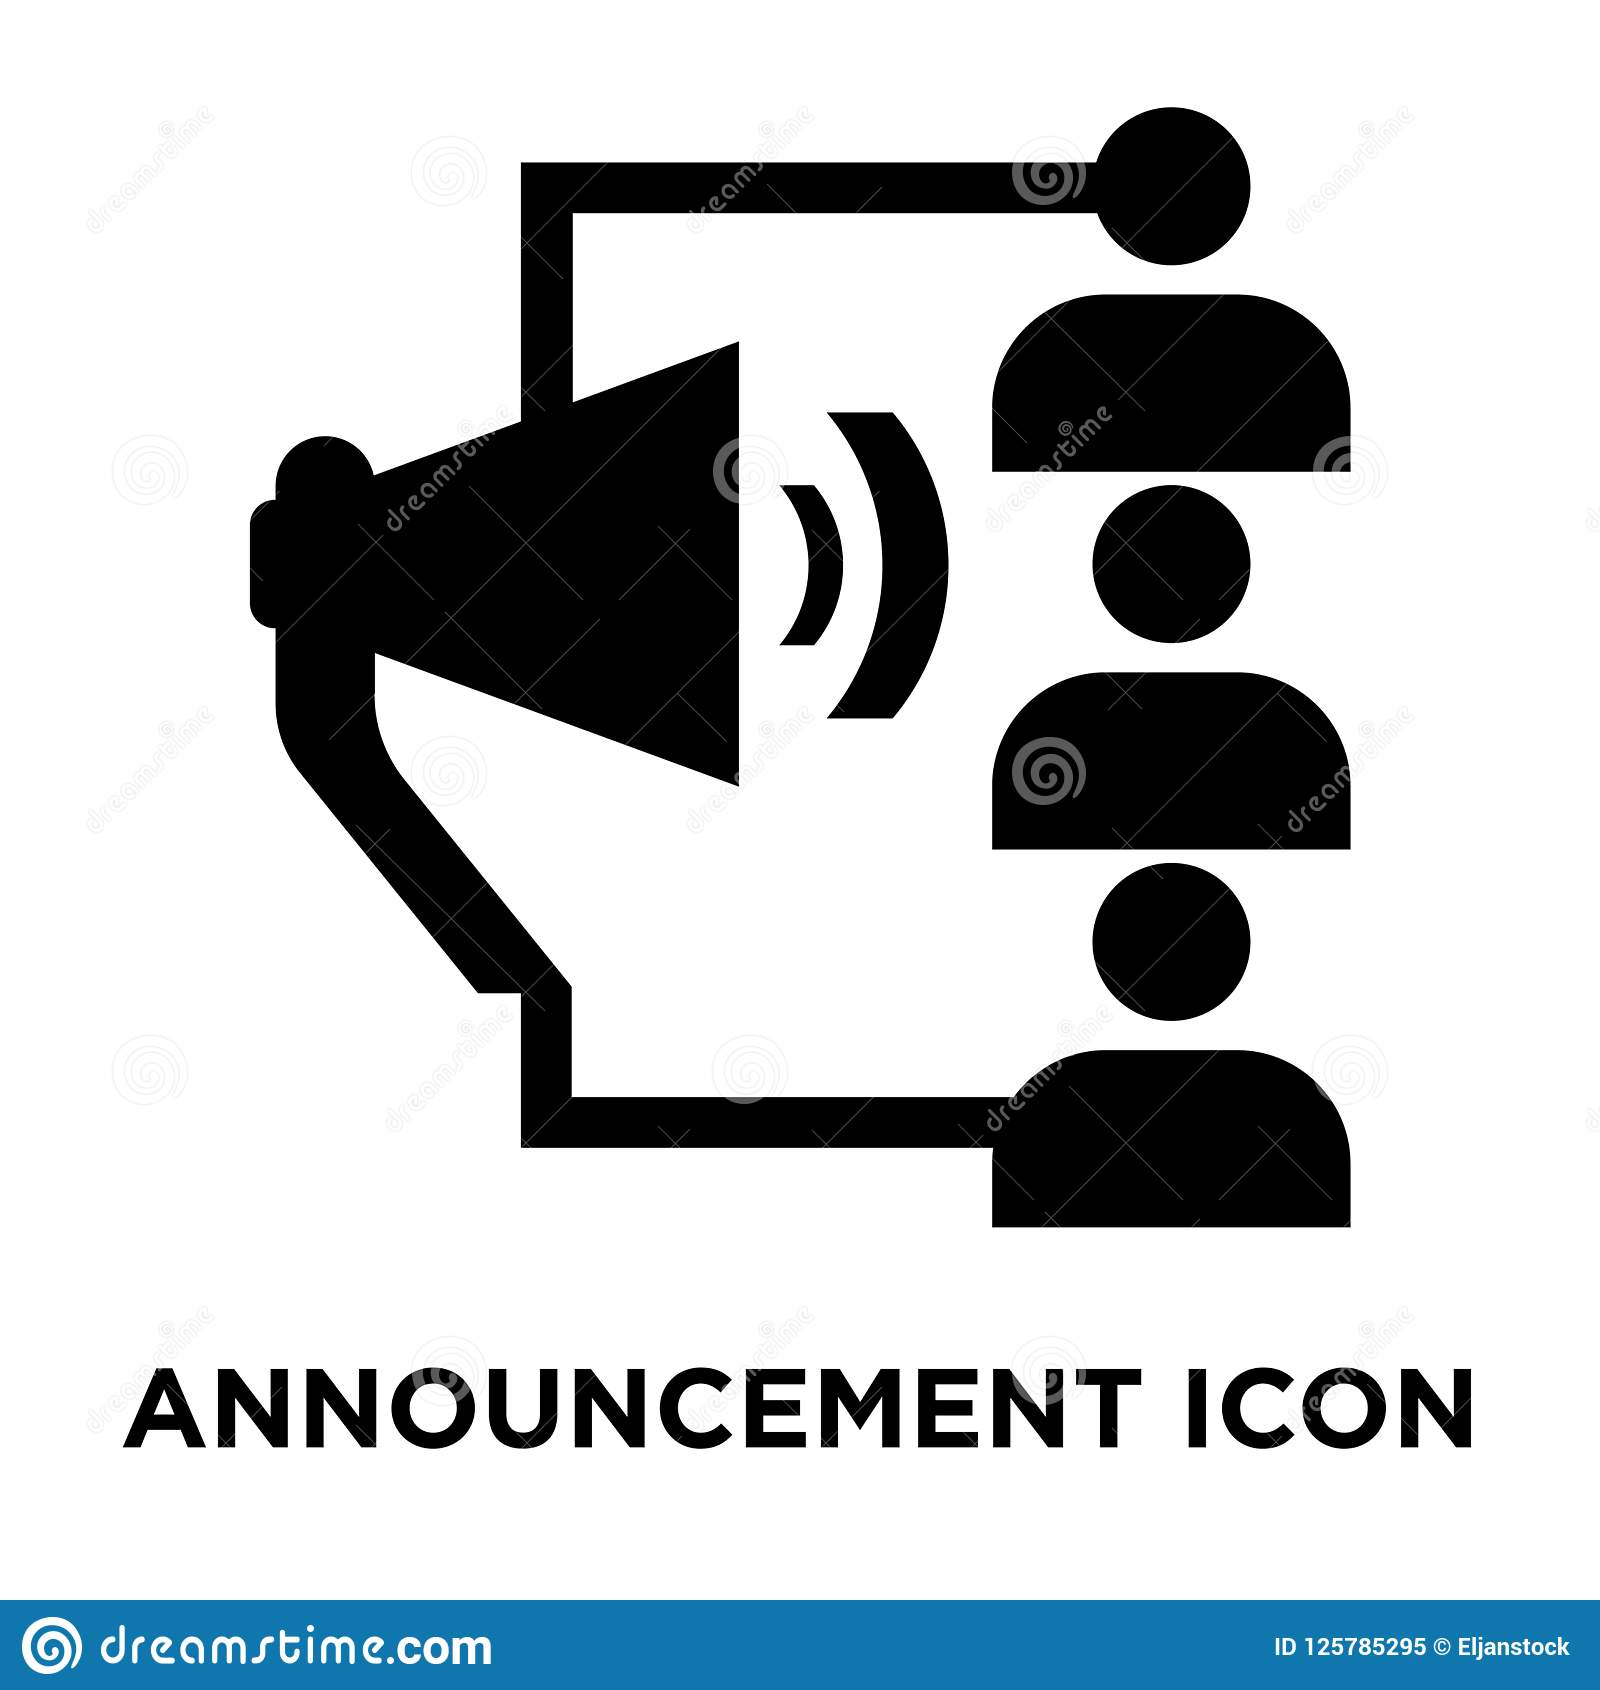 announcement icon vector isolated